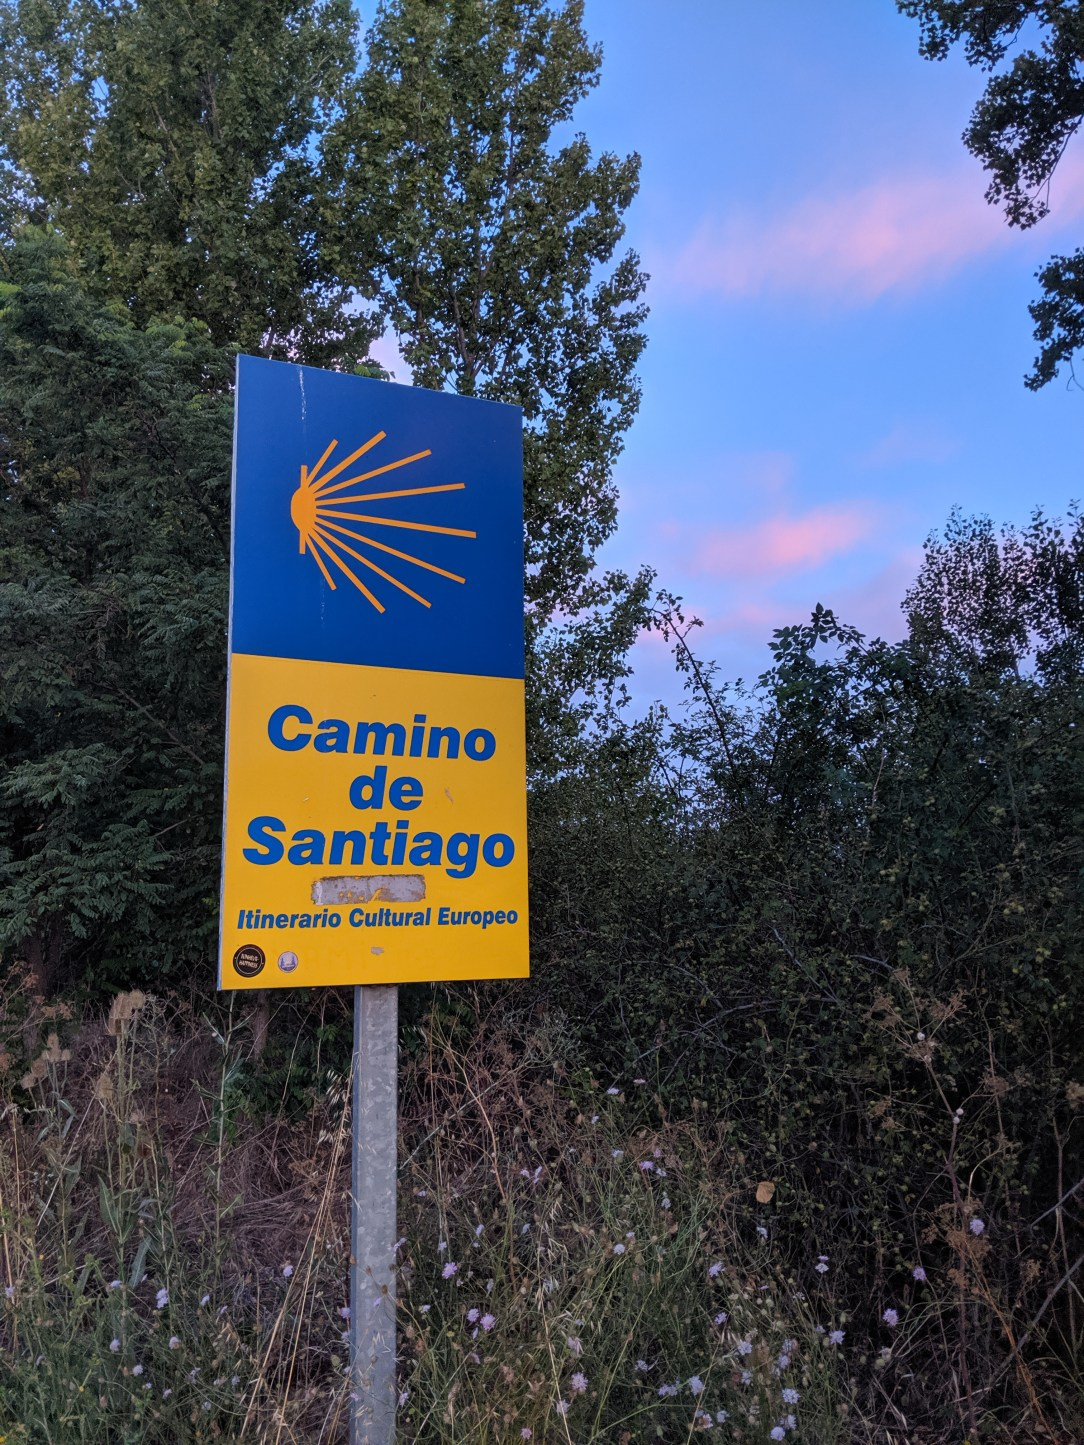 El Camino de Santiago, the Way of St. James